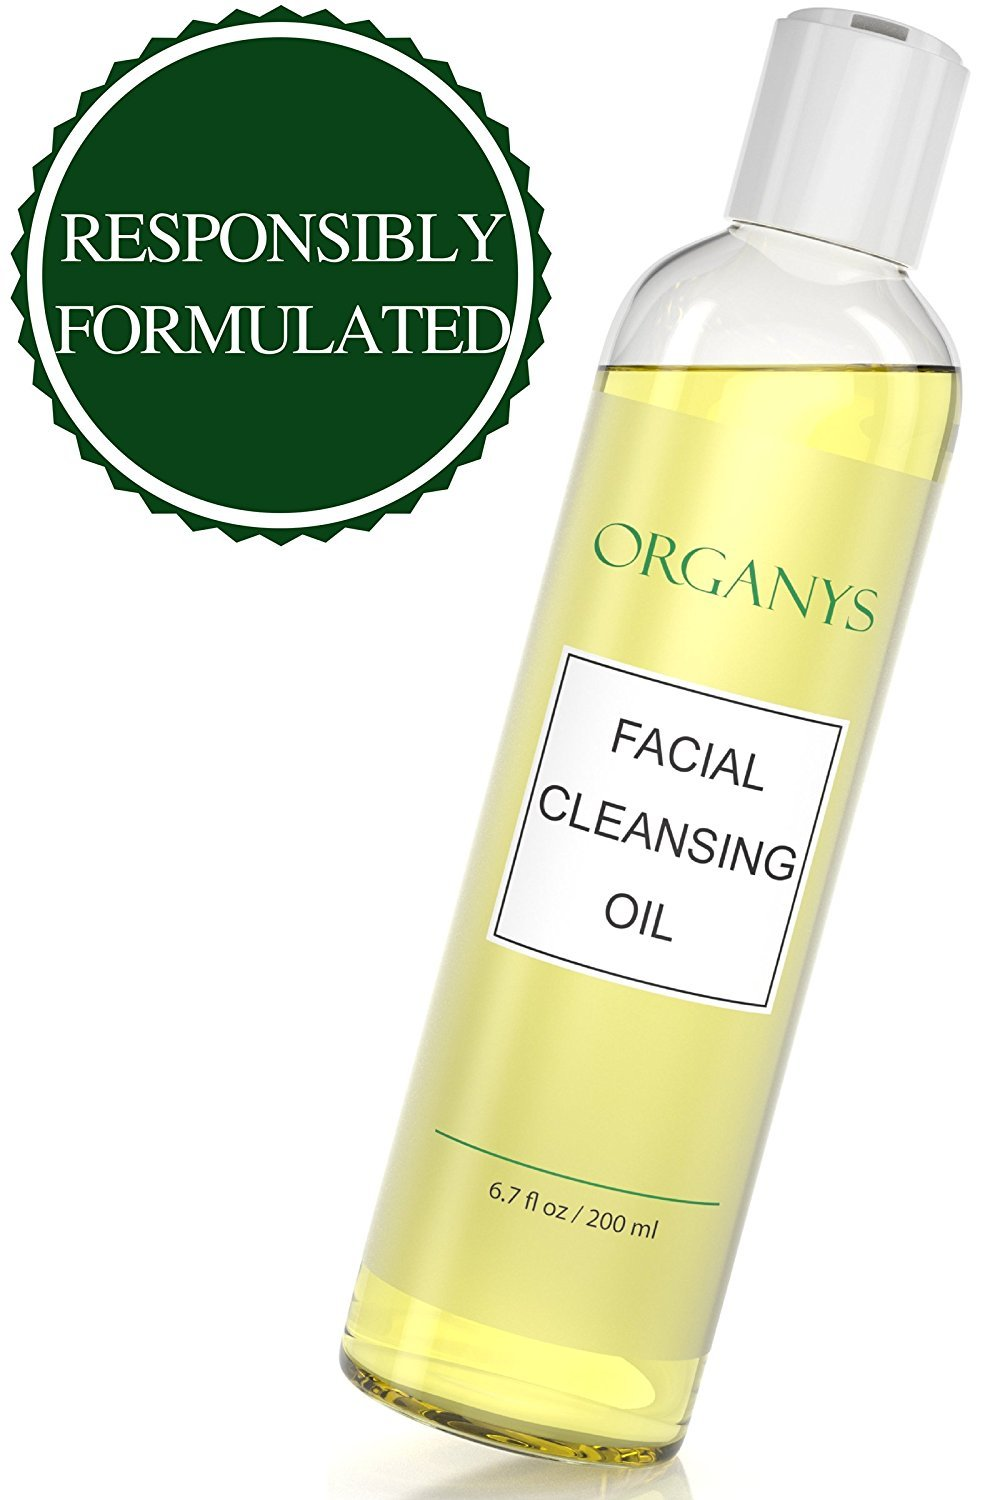 Organys Deep Cleansing Oil & Makeup Remover (Compare To DHC) Best Natural Gentle Daily Face Wash Cleanser Reduces The Look Of Pores Acne Blackheads Breakouts For Sensitive Oily Dry Combination Skin